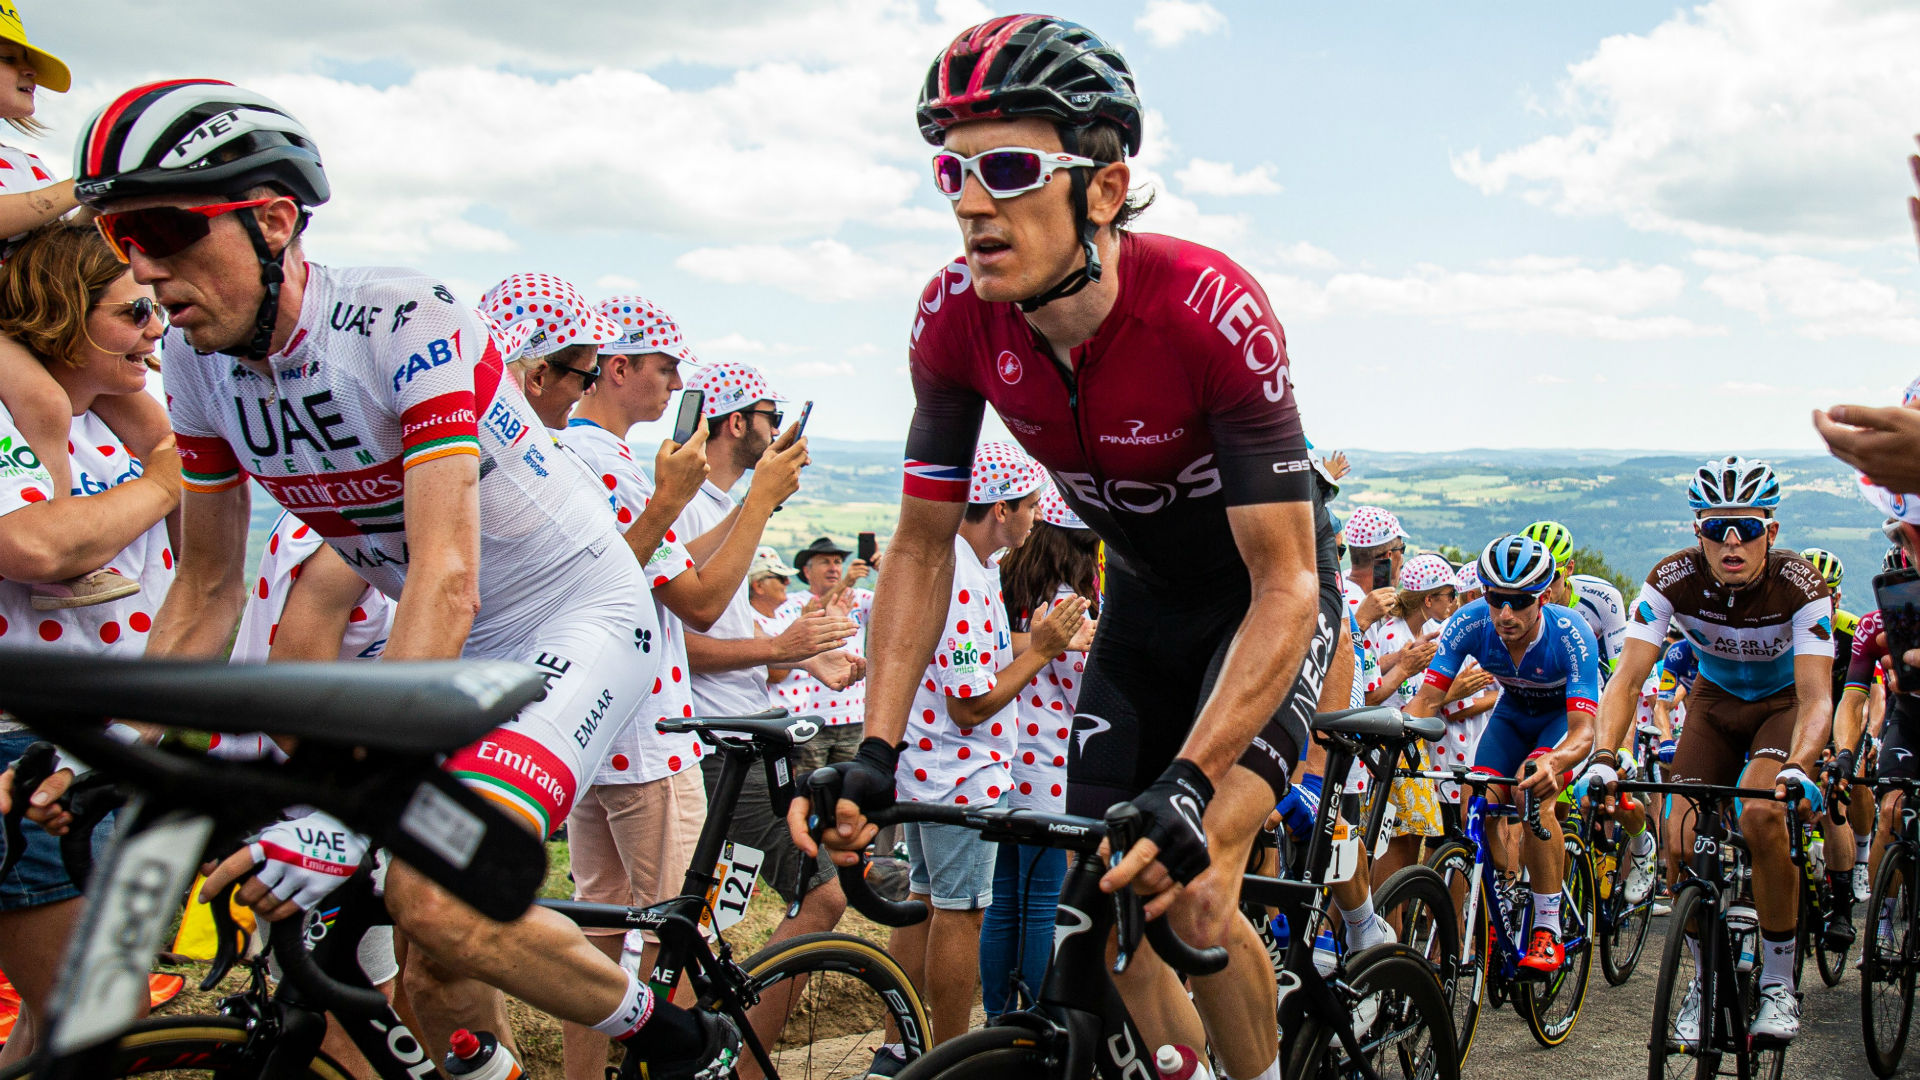 Thomas back in pack after Tour crash